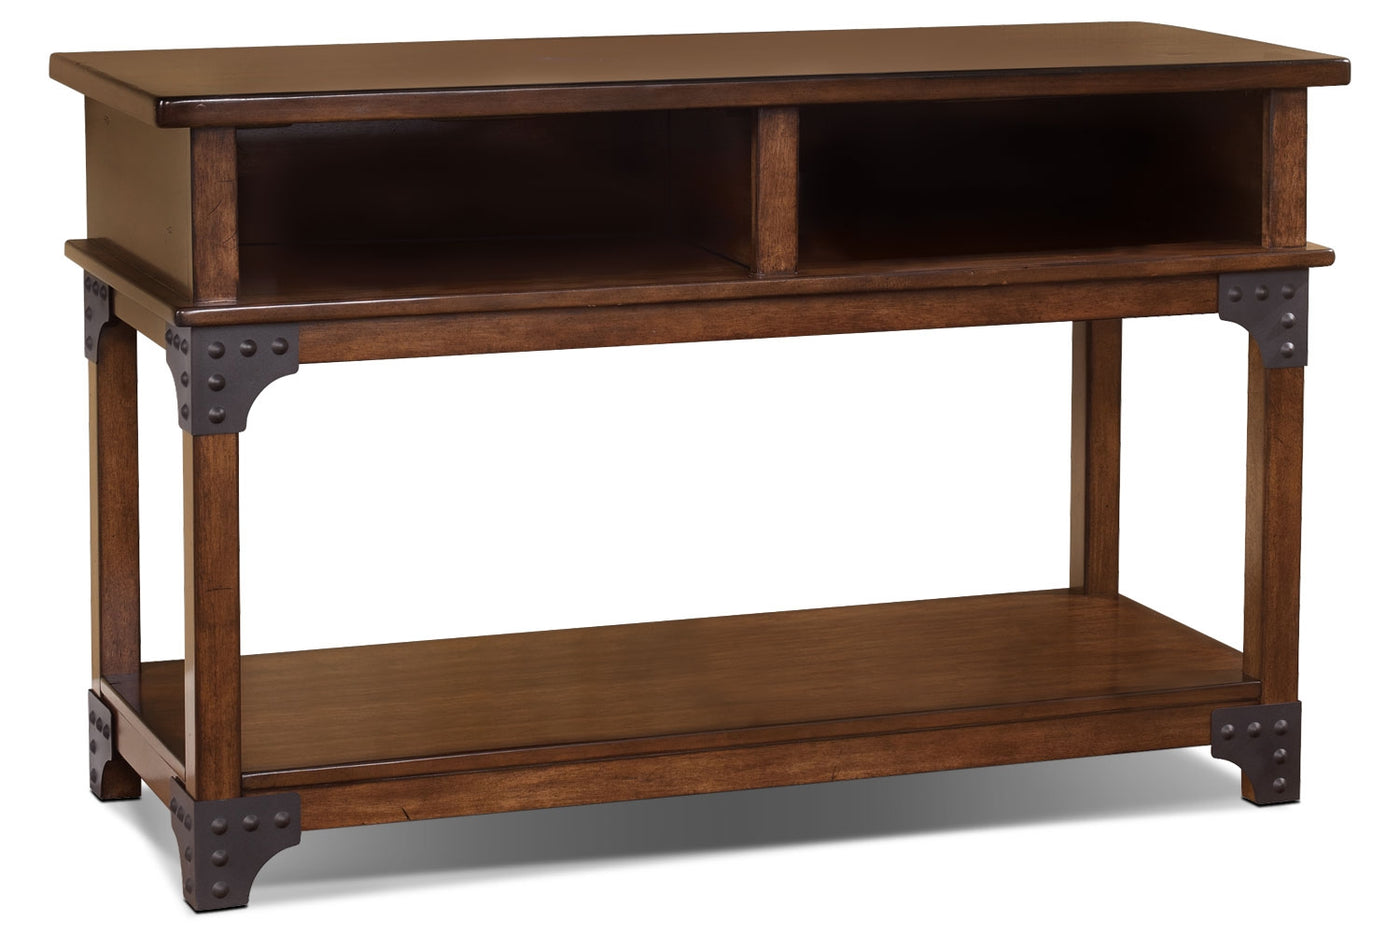 Murphy Coffee Table.Murphy Sofa Table And Tv Stand